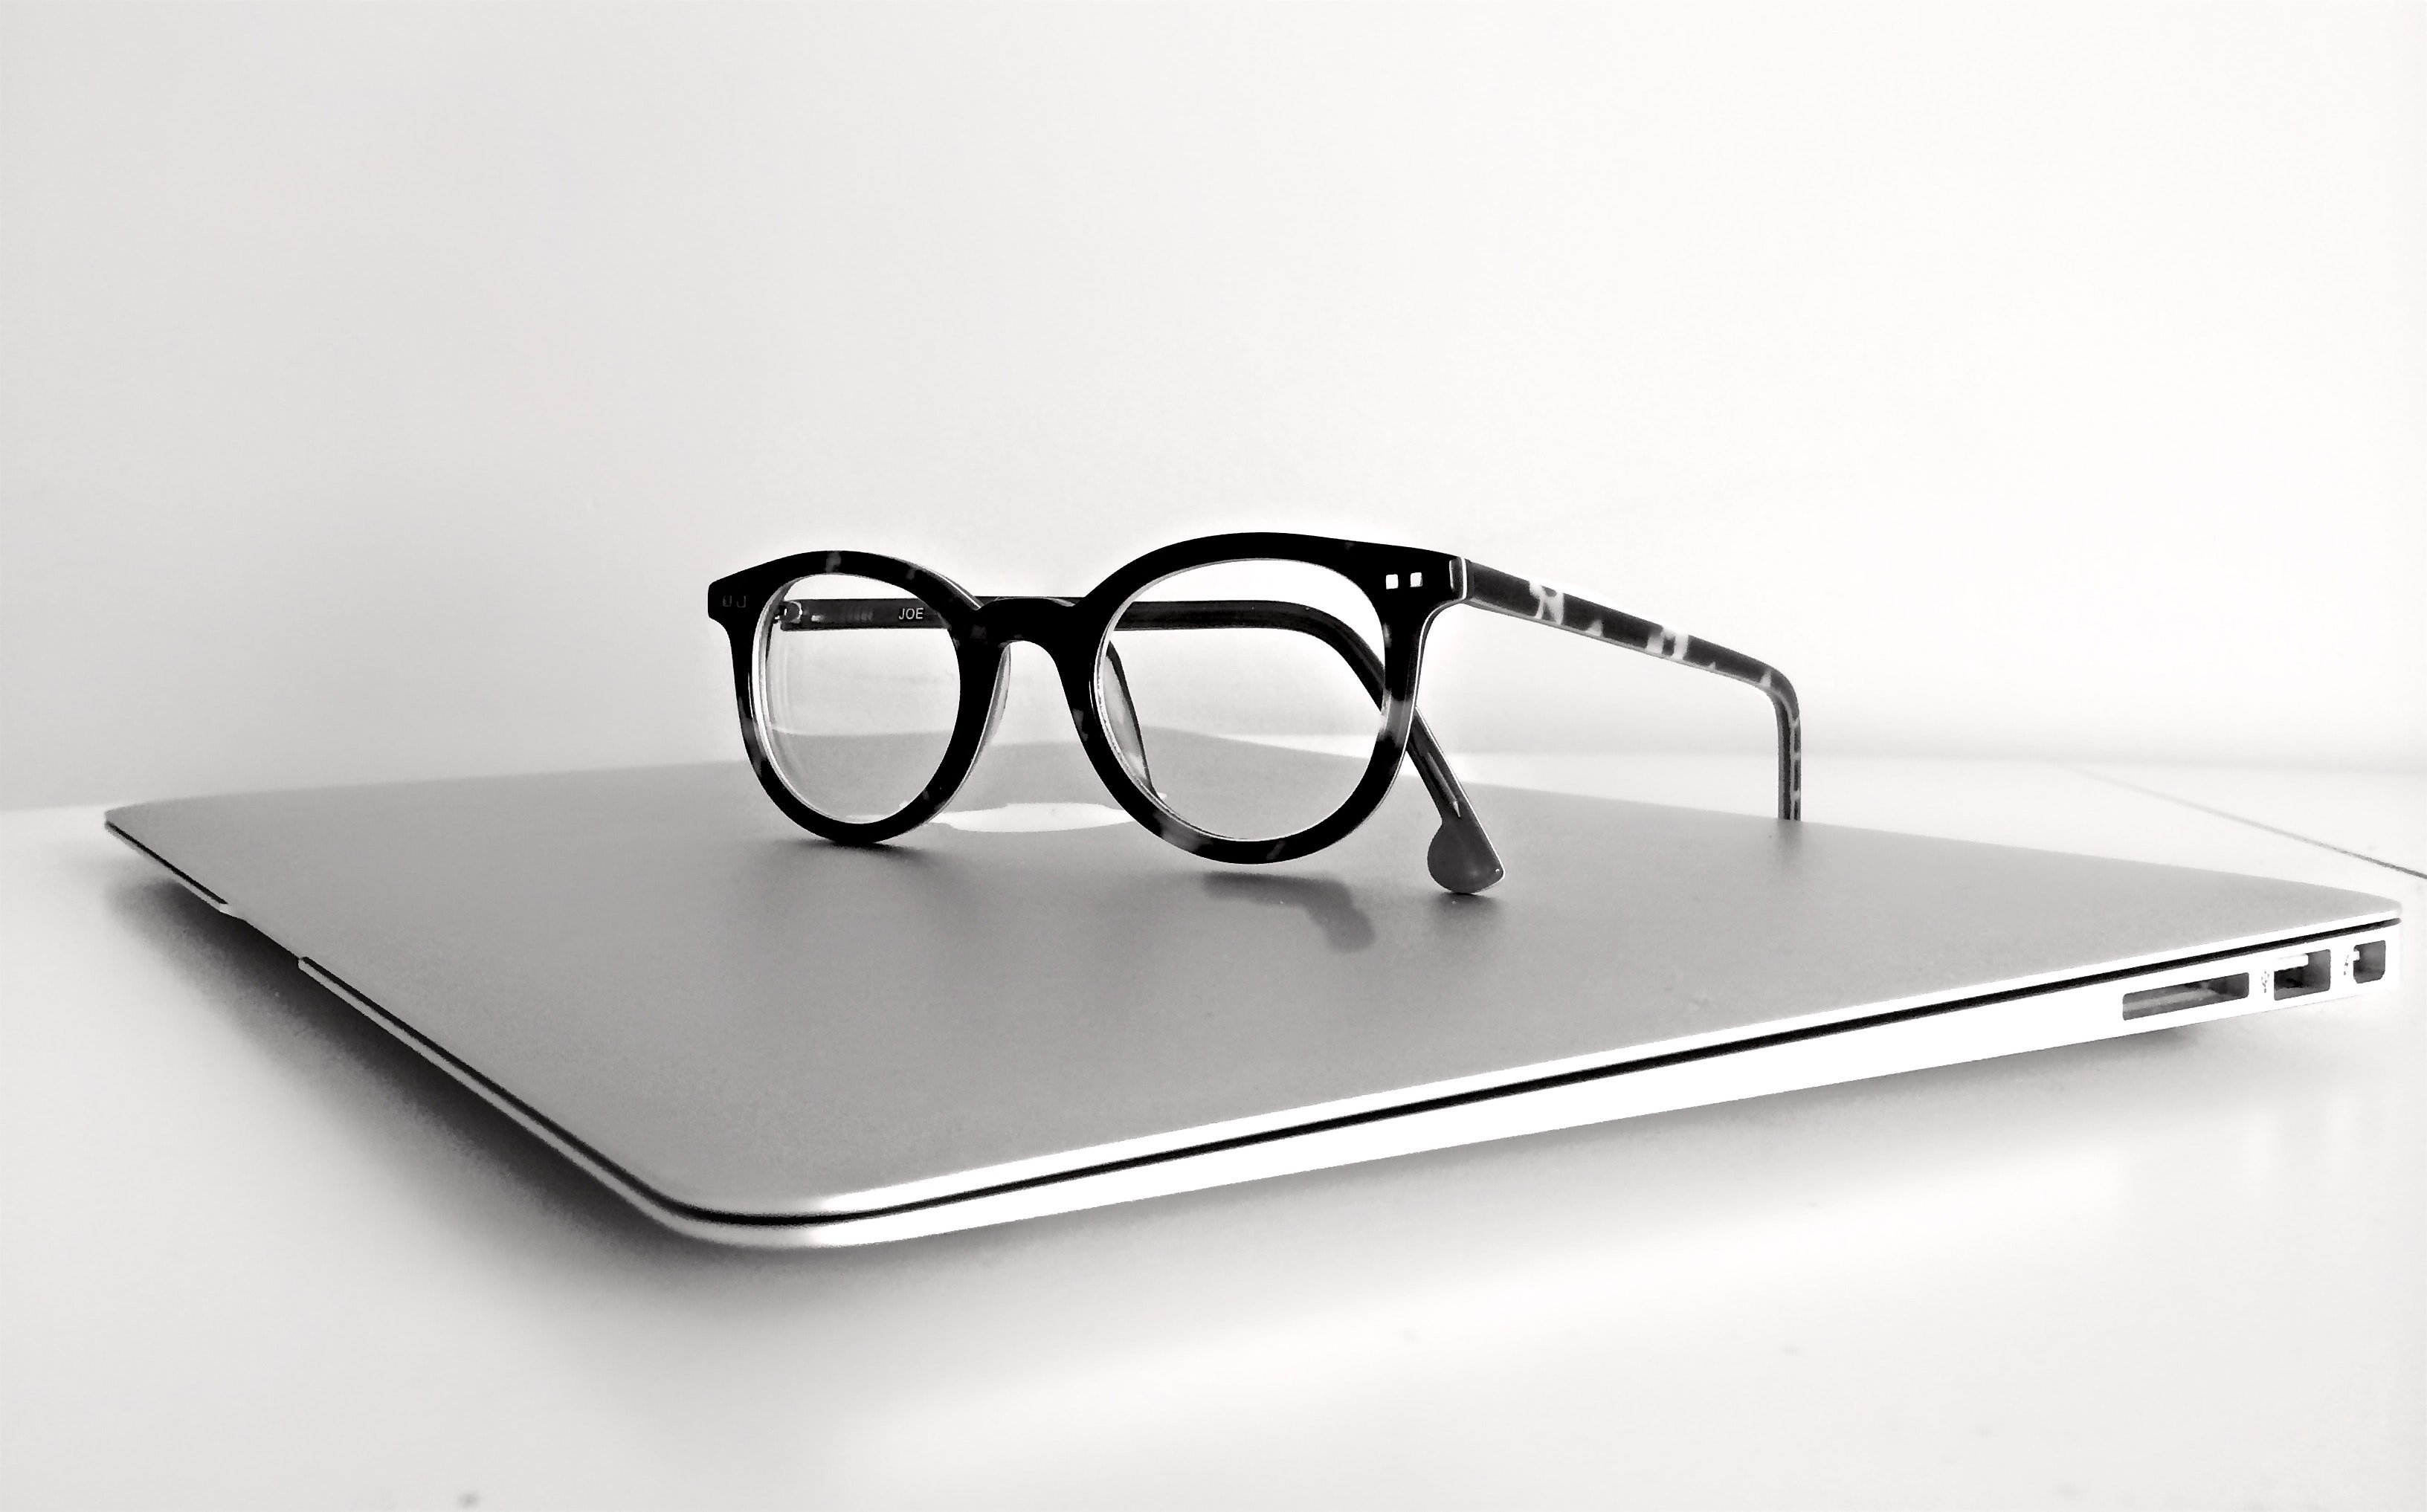 apple-computer-eyeglasses-159417